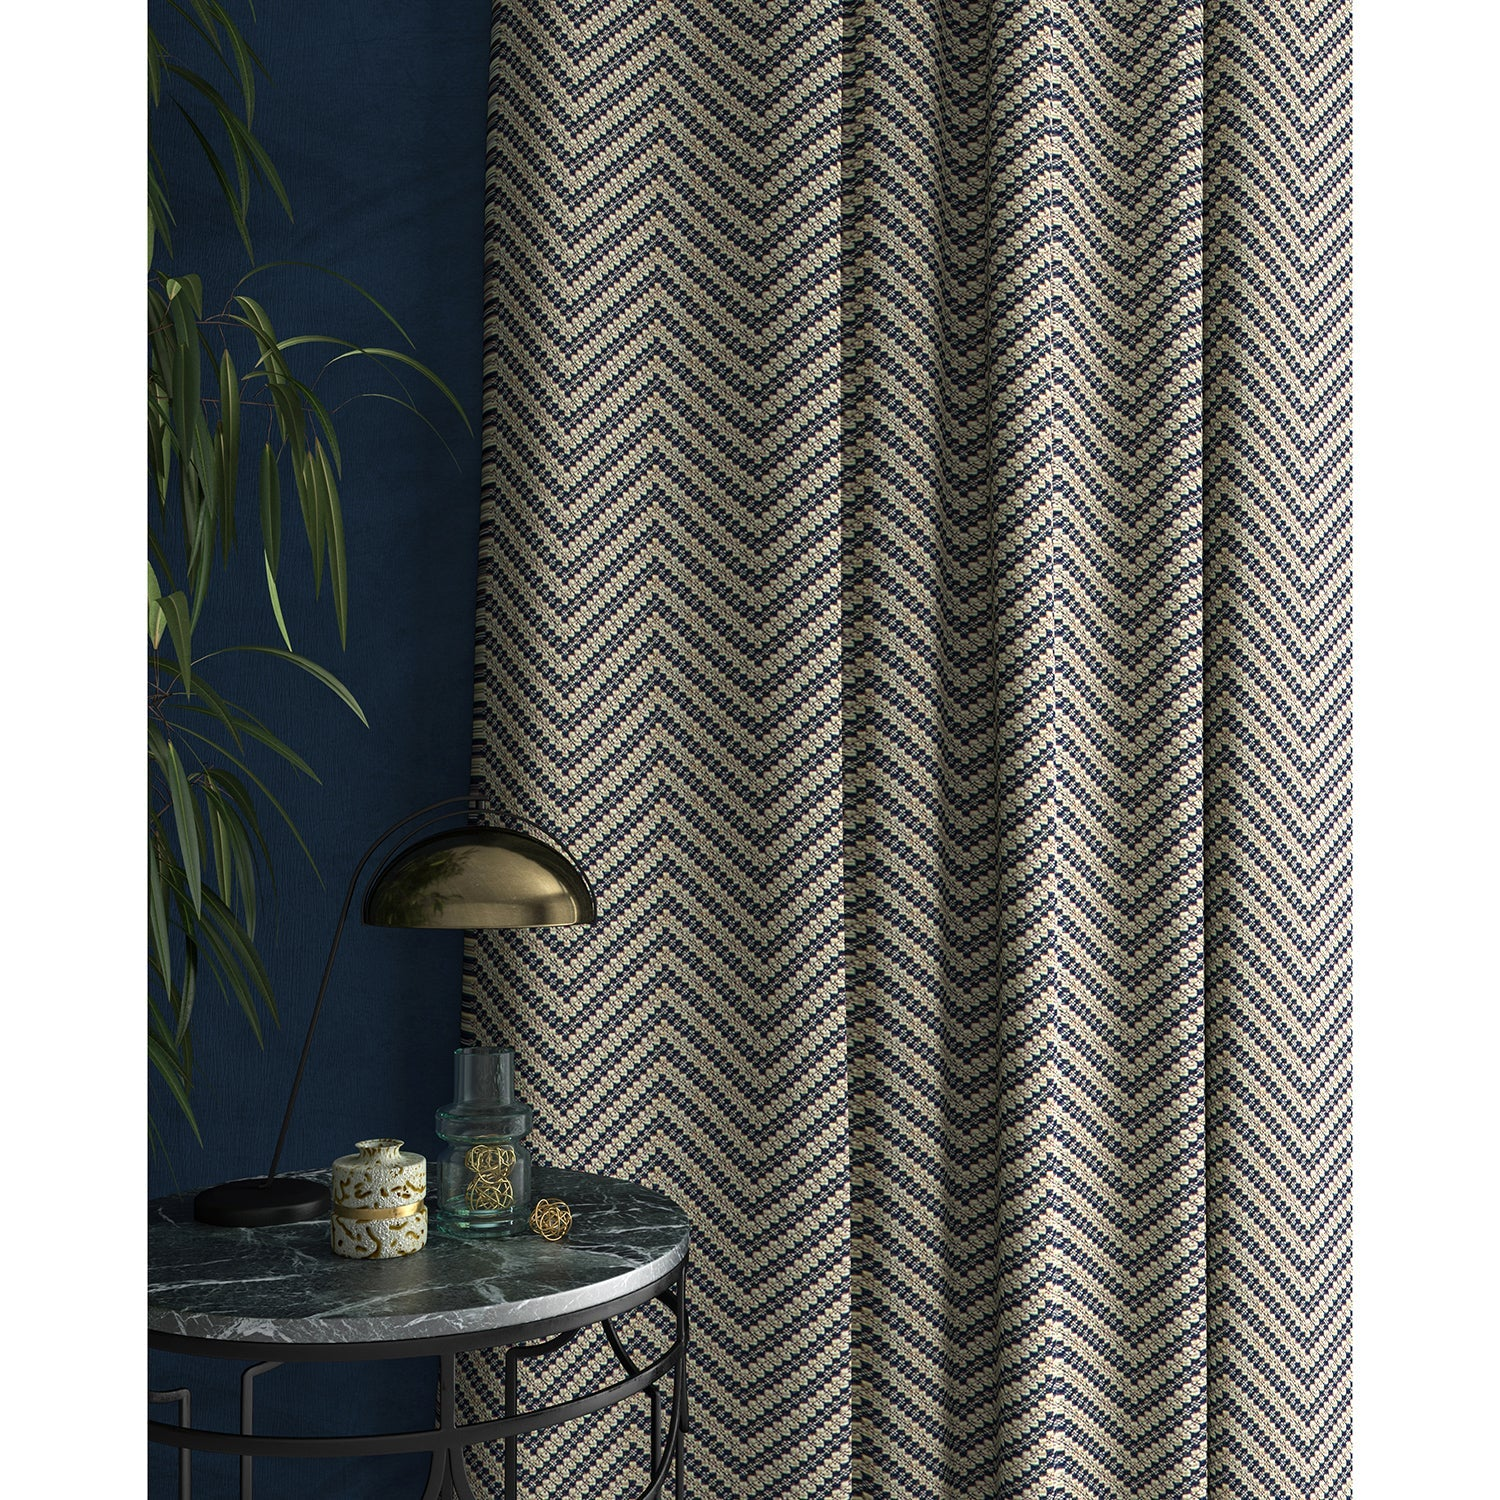 Curtain in a navy and neutral herringbone weave fabric